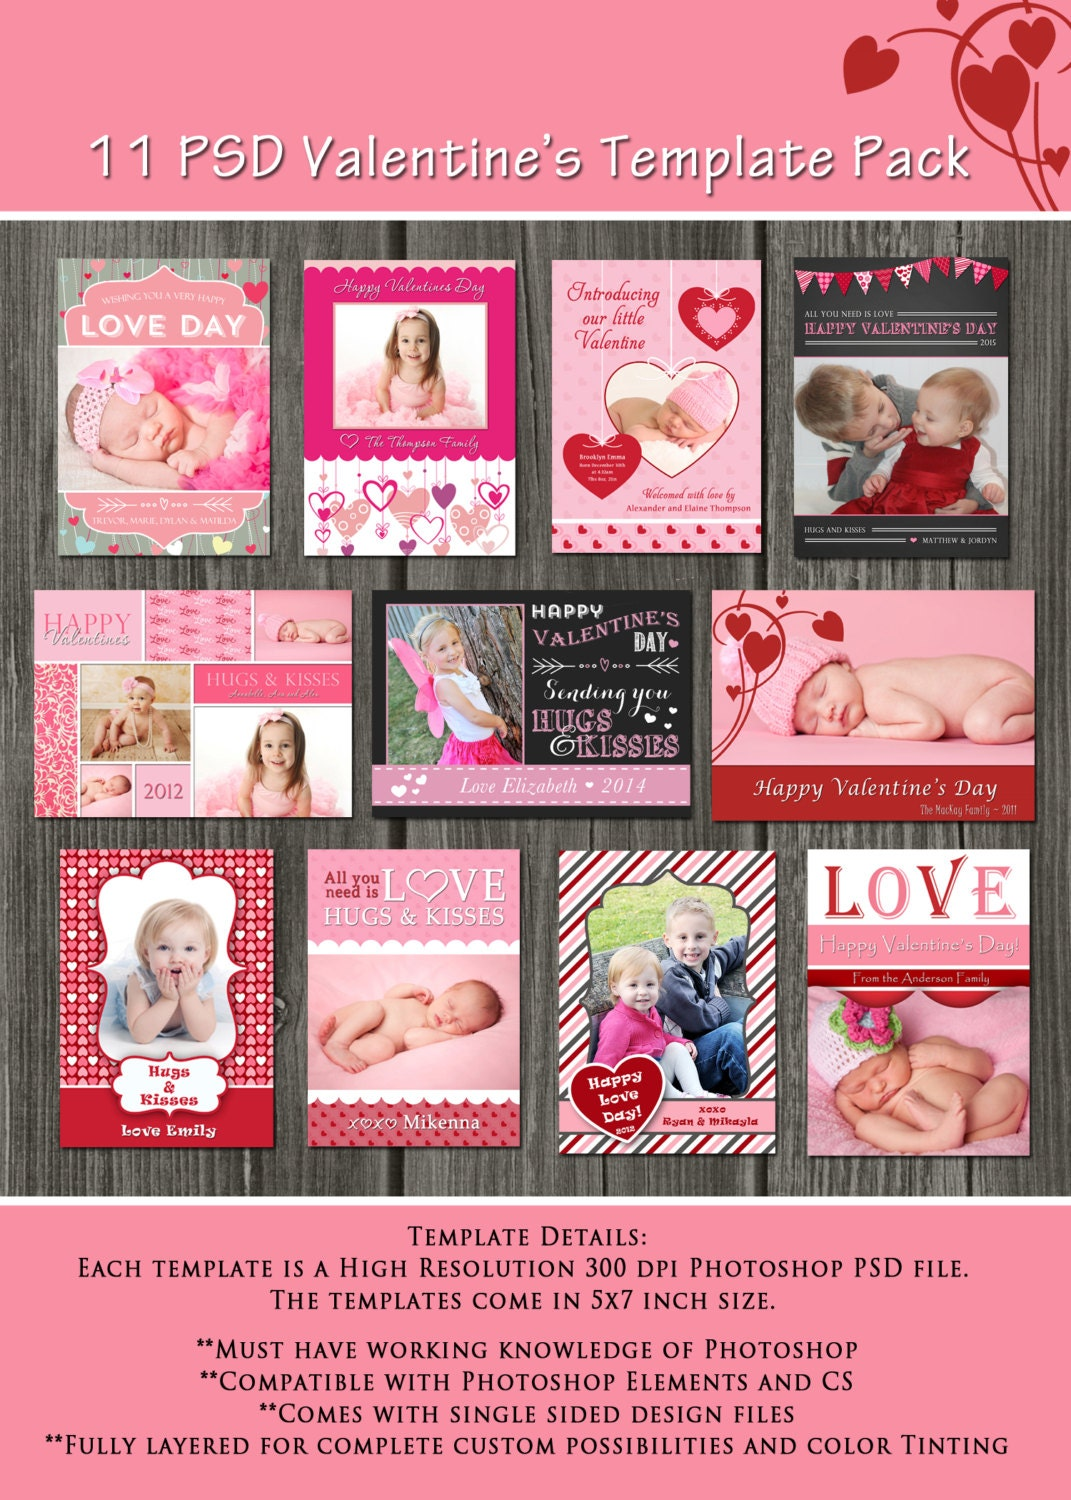 INSTANT DOWNLOAD Valentine's Day Card Templates 11 PSD